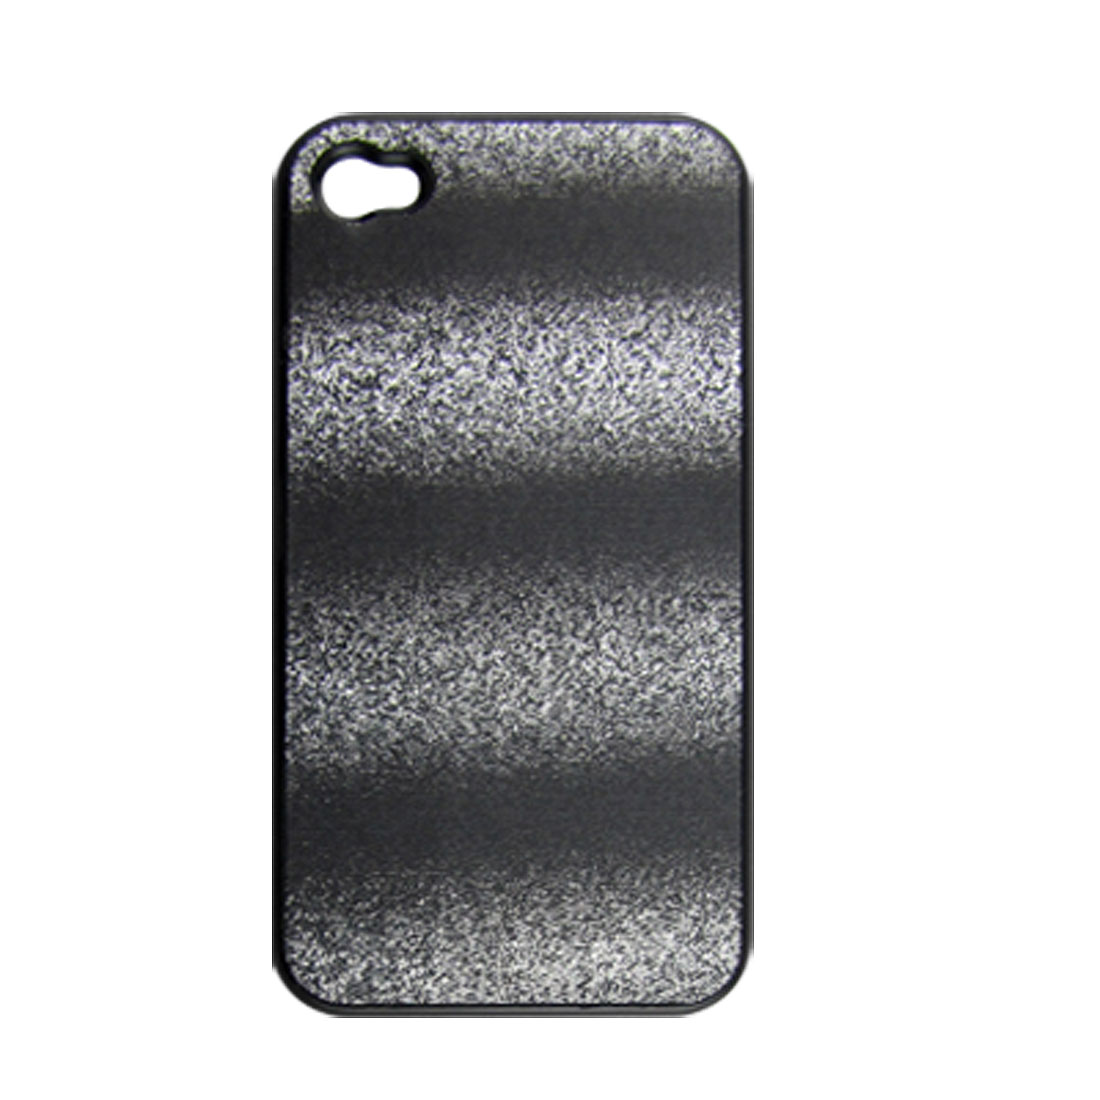 Sparkling Bling Hard Plastic Back Case for iPhone 4 4G